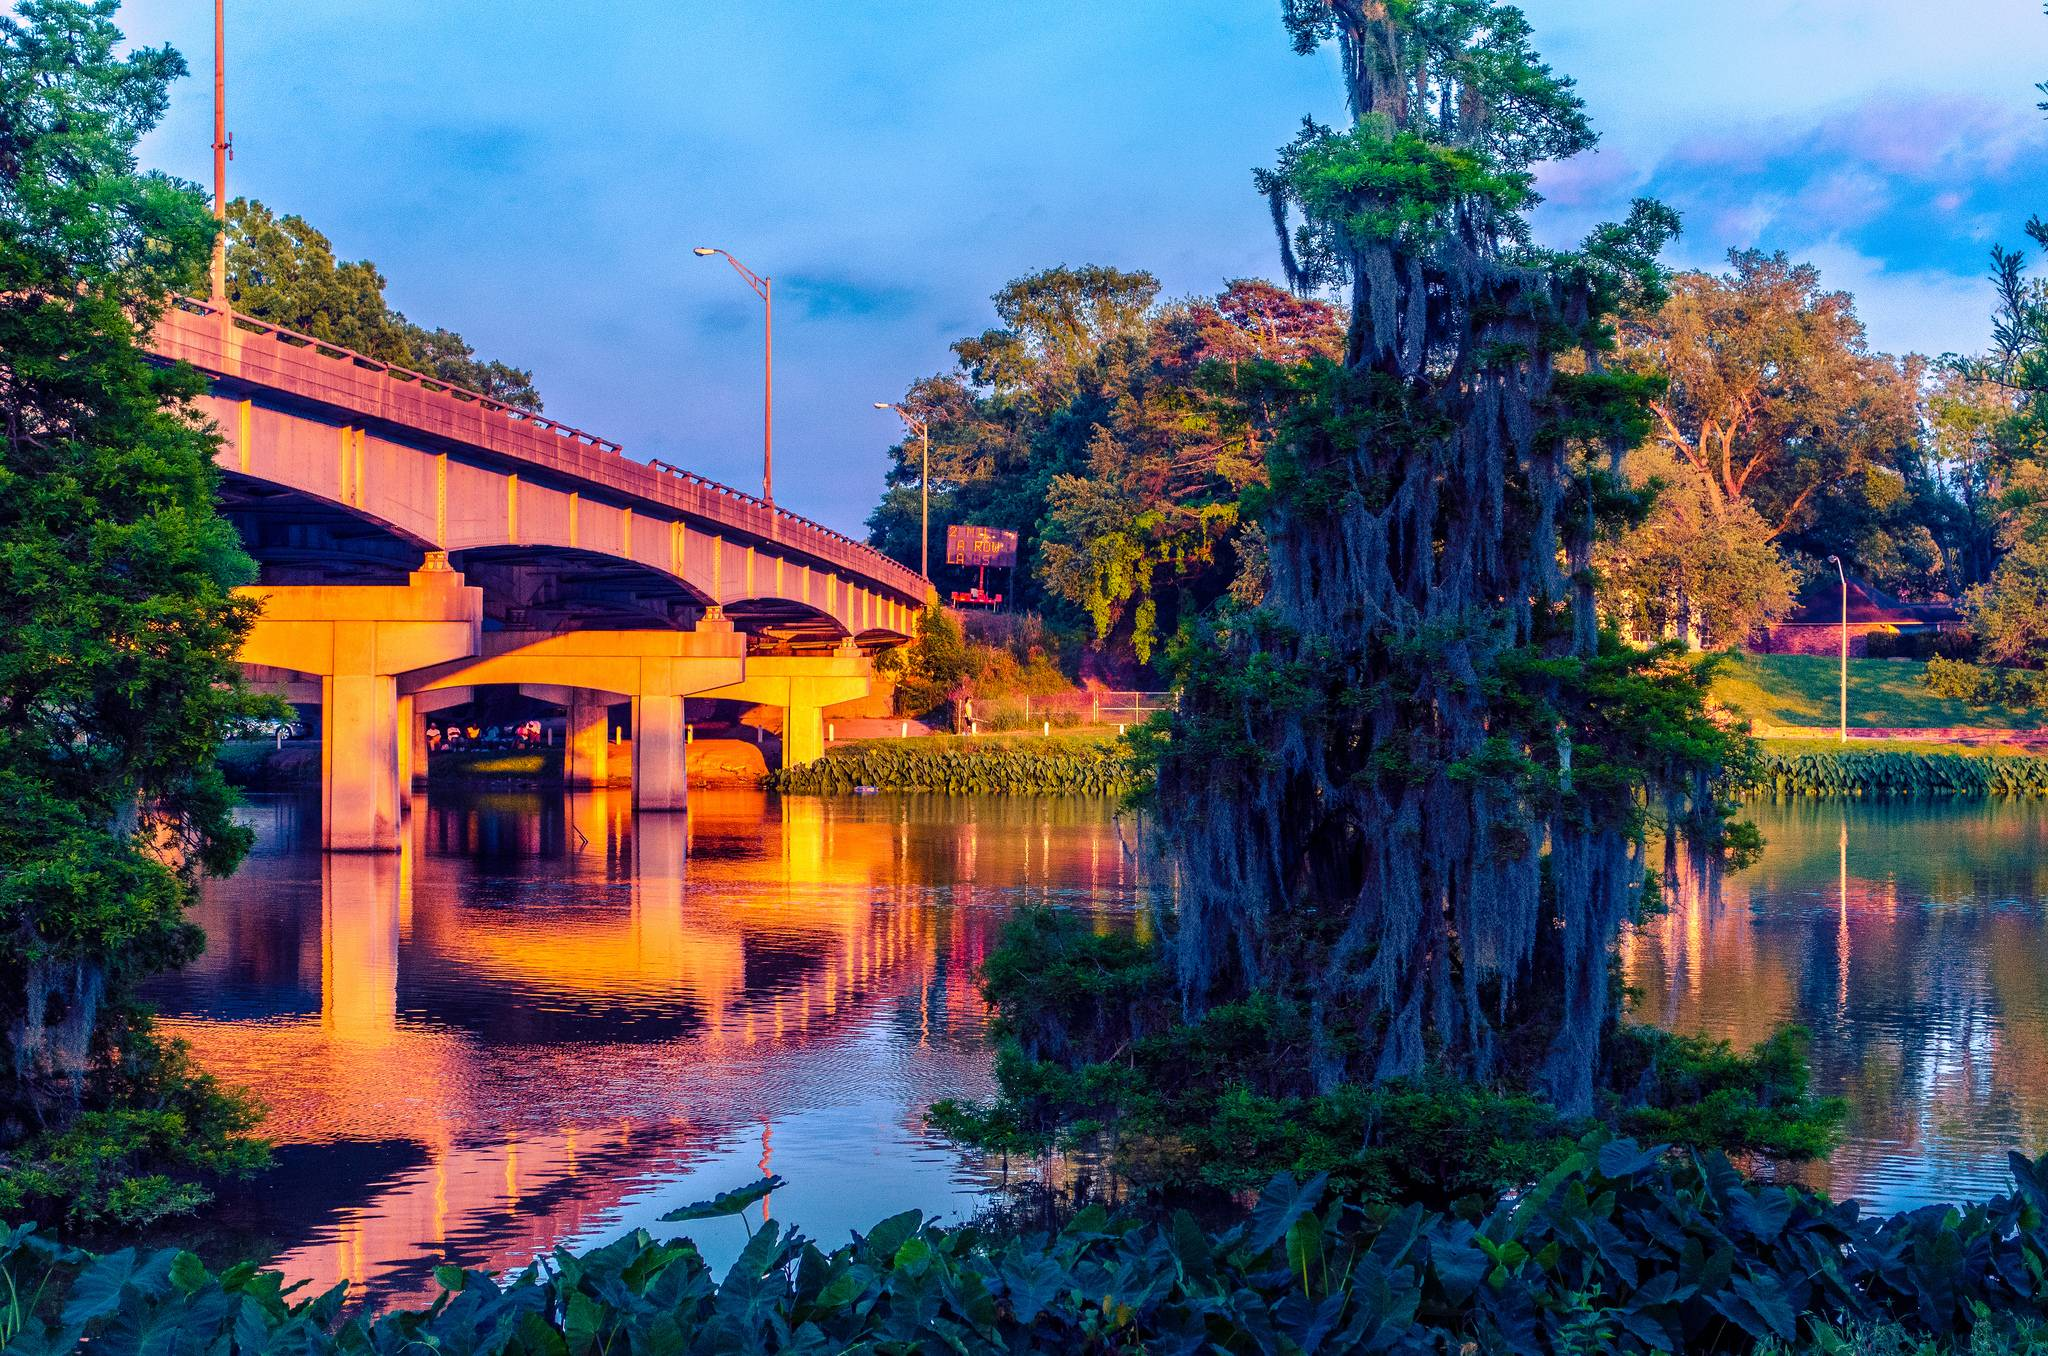 25 Photos Of Baton Rouge That Will Make You Want To Move There